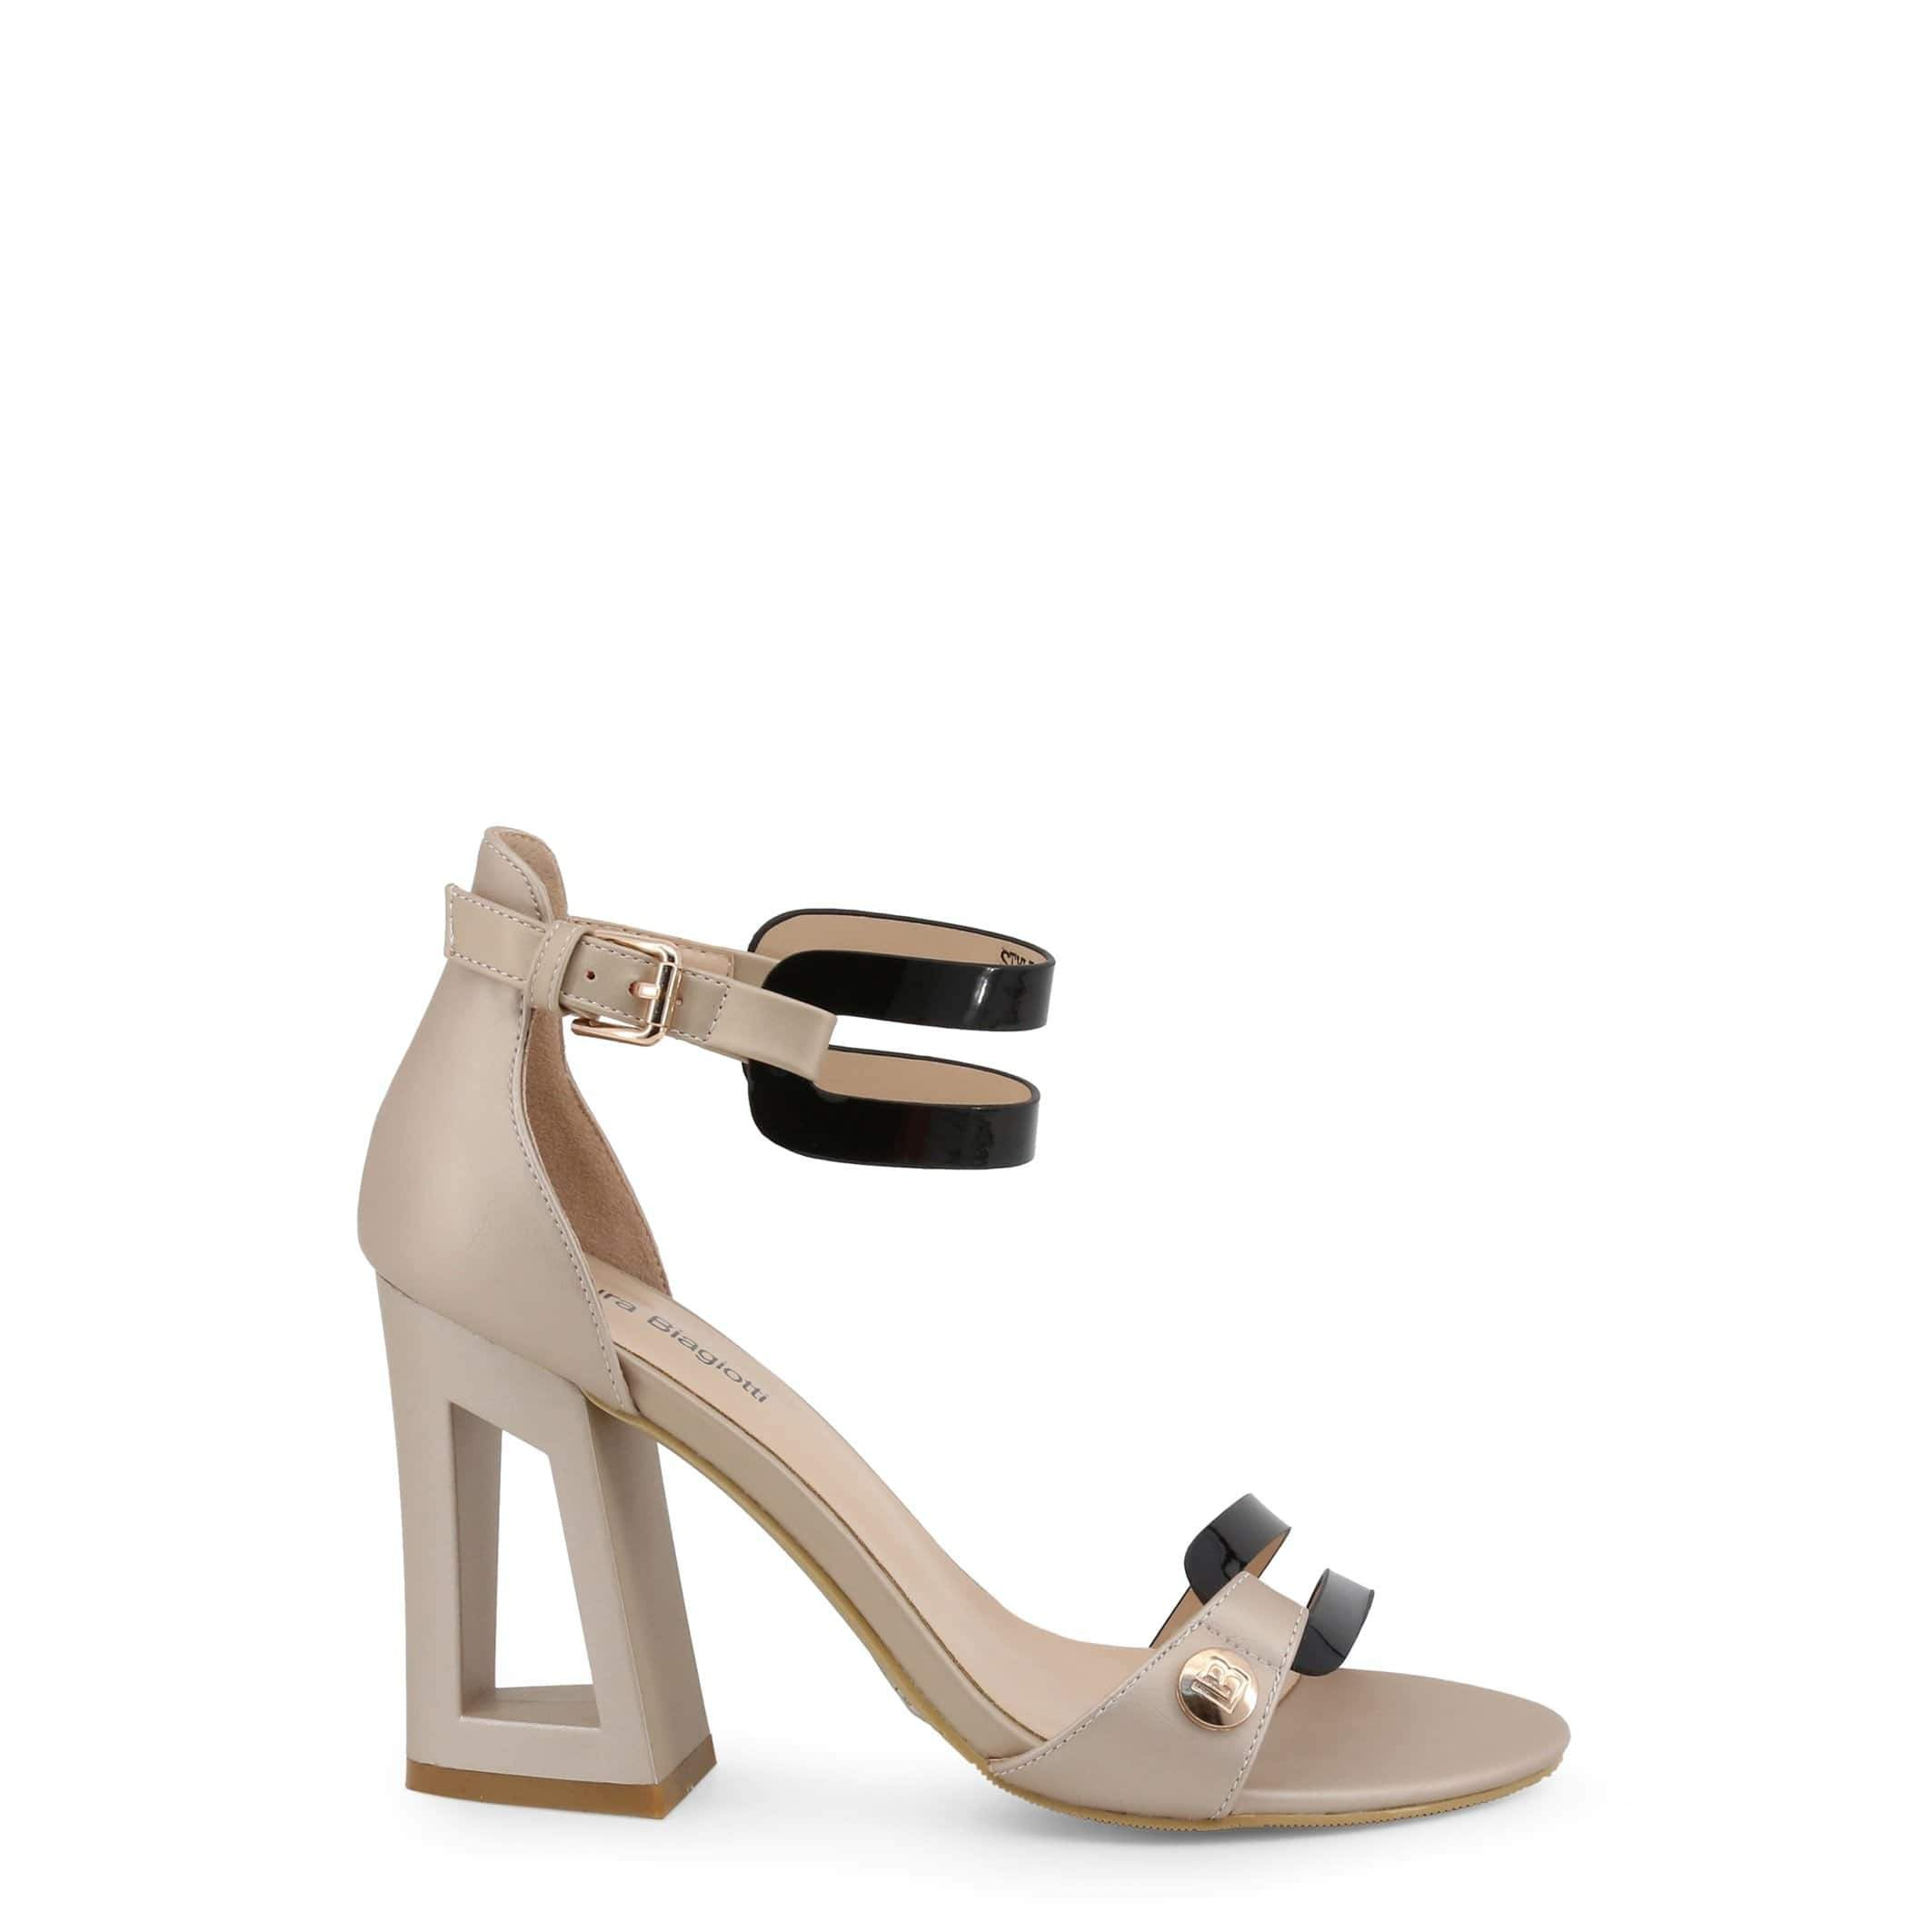 Laura Biagiotti Shoes Sandals brown / 38 Laura Biagiotti - 5309